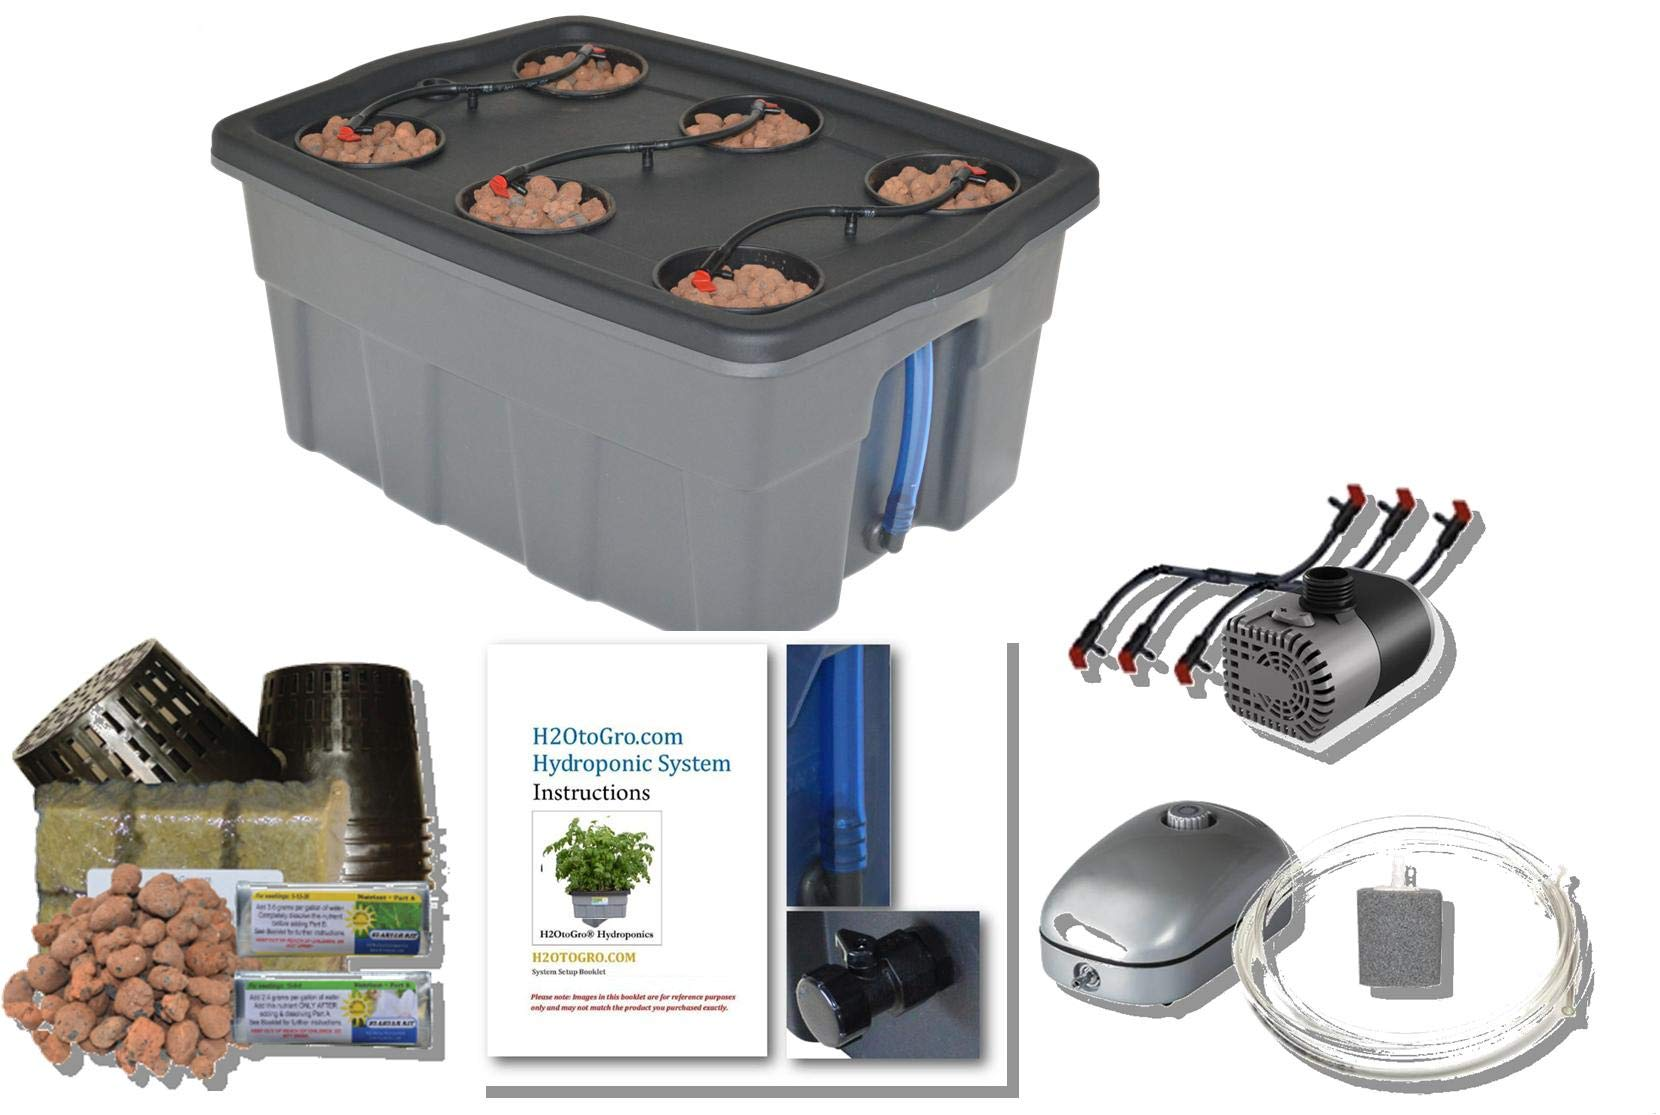 Complete Hydroponic System Self-Watering DWC Bubbler Kit # 4-6 H2OtoGro by H2OToGro